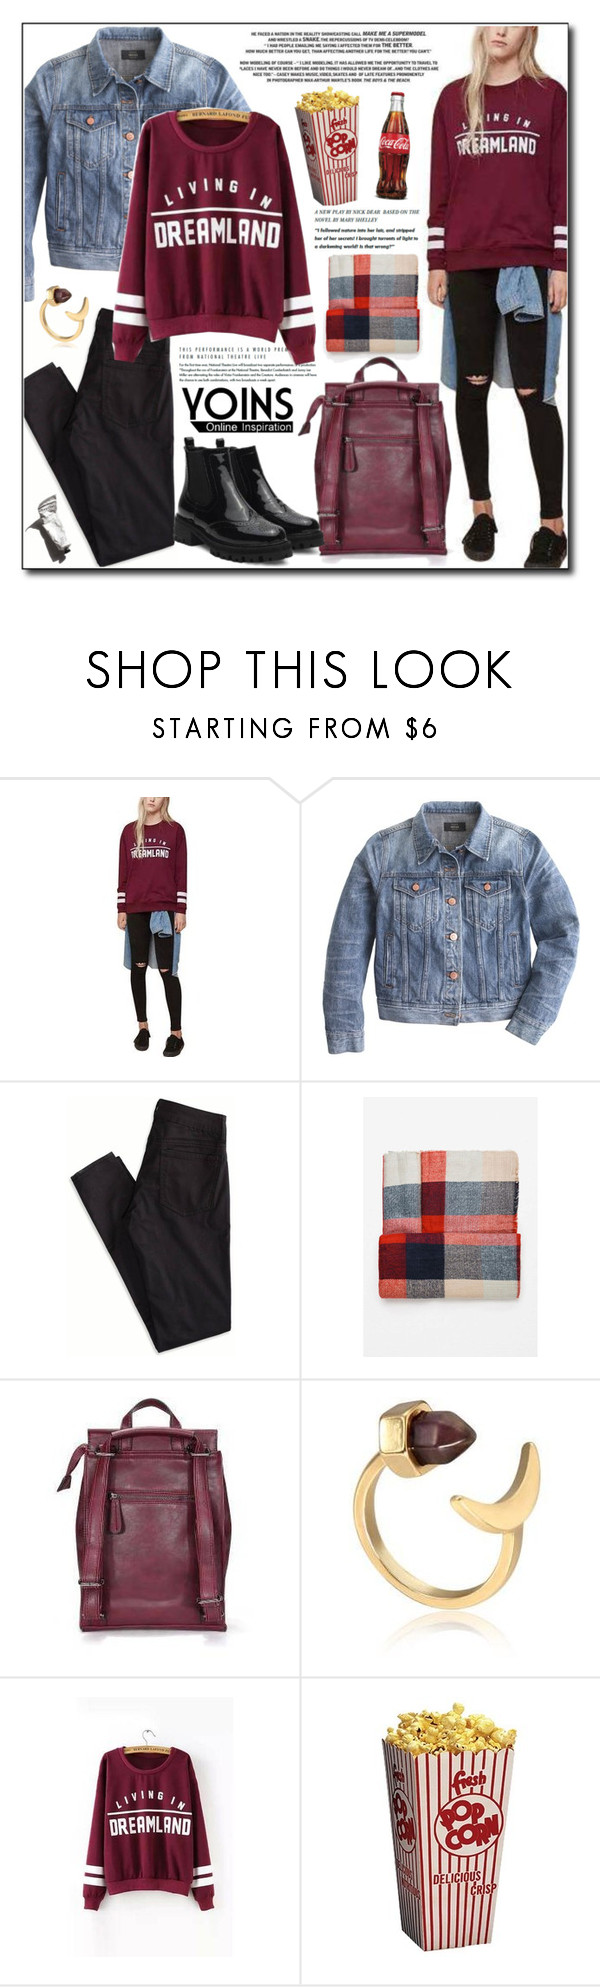 """#247"" by adnaaaa ❤ liked on Polyvore featuring J.Crew, American Eagle Outfitters, Garance Doré, women's clothing, women's fashion, women, female, woman, misses and juniors"